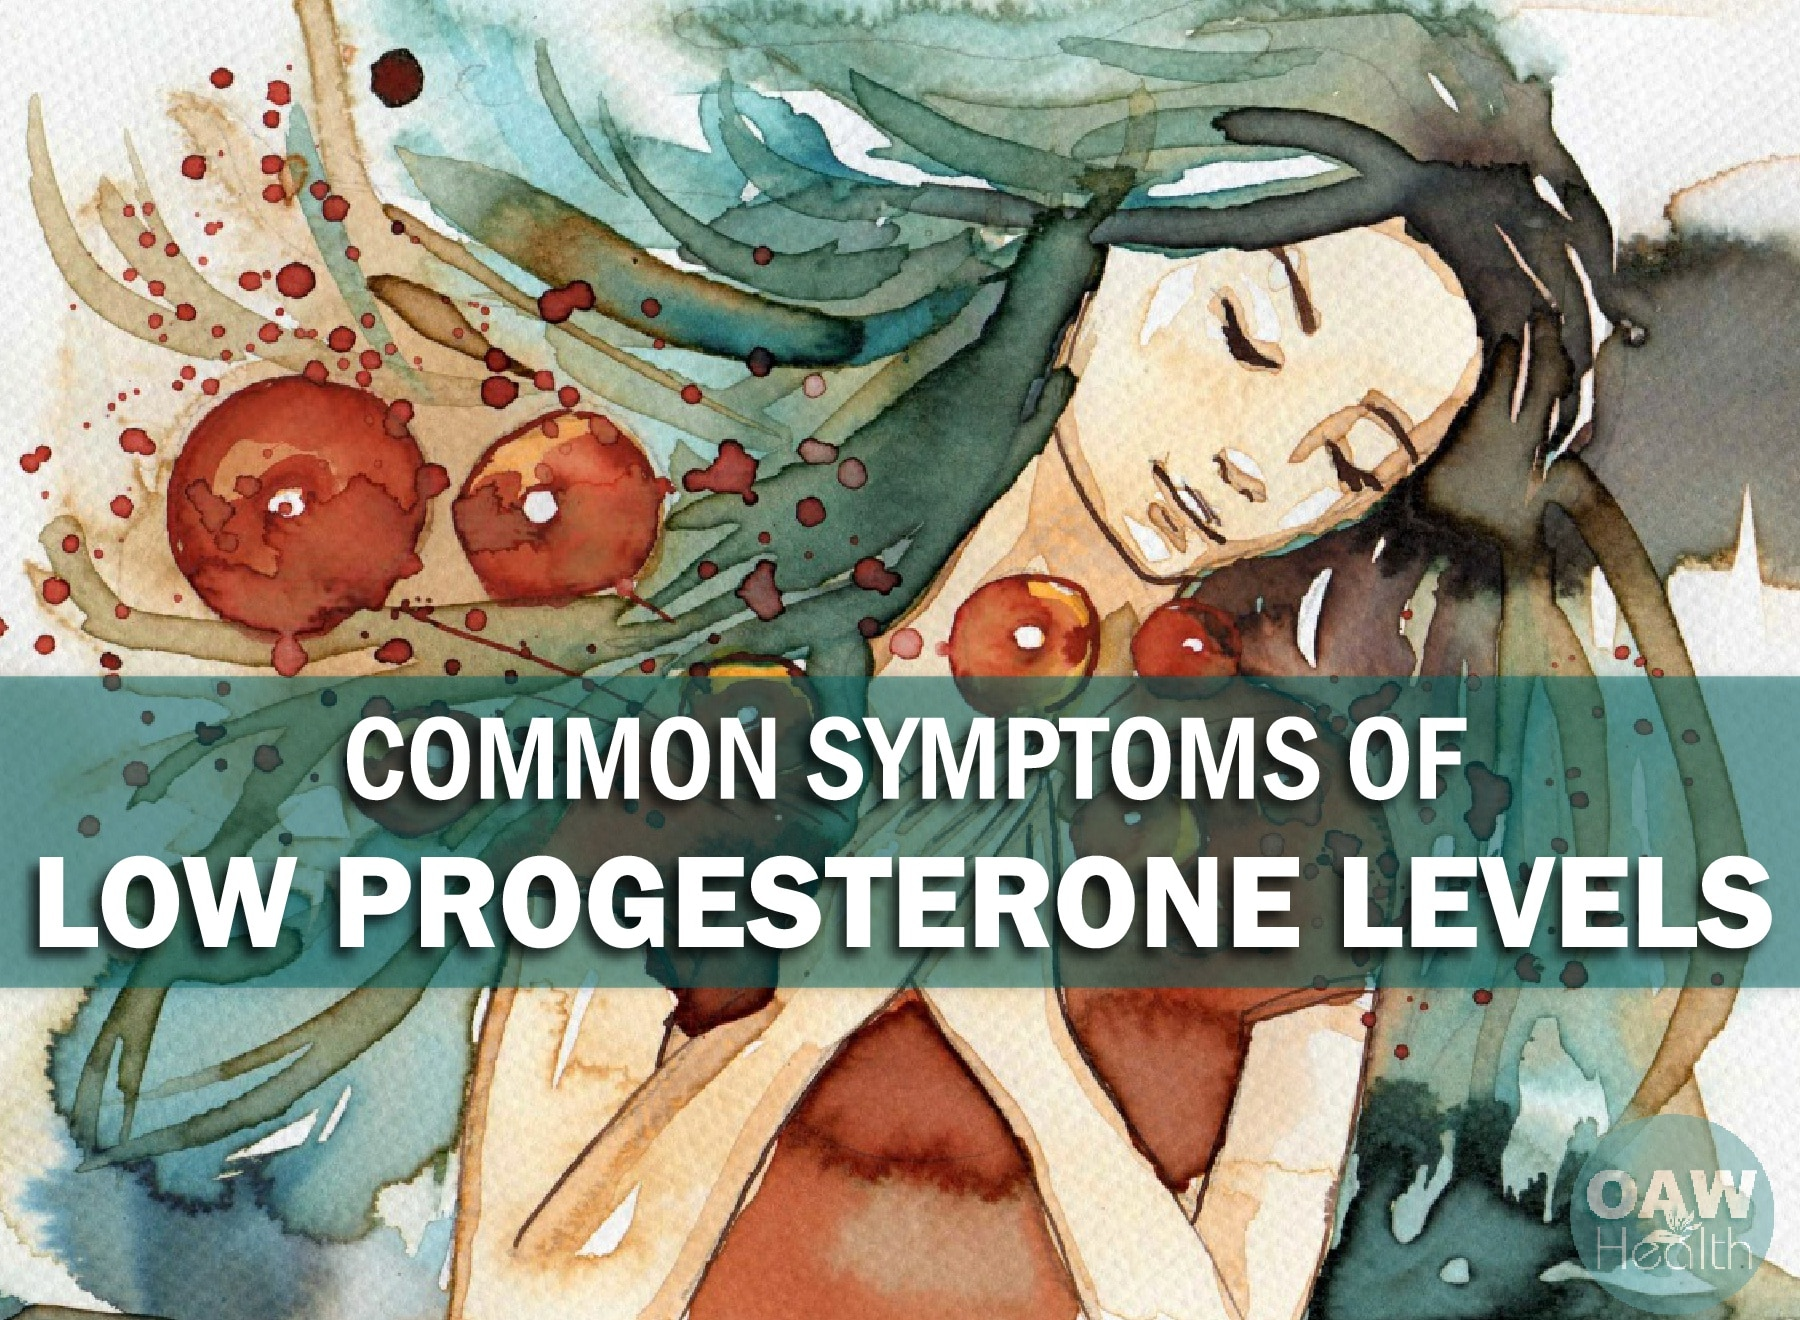 Common Symptoms of Low Progesterone Levels